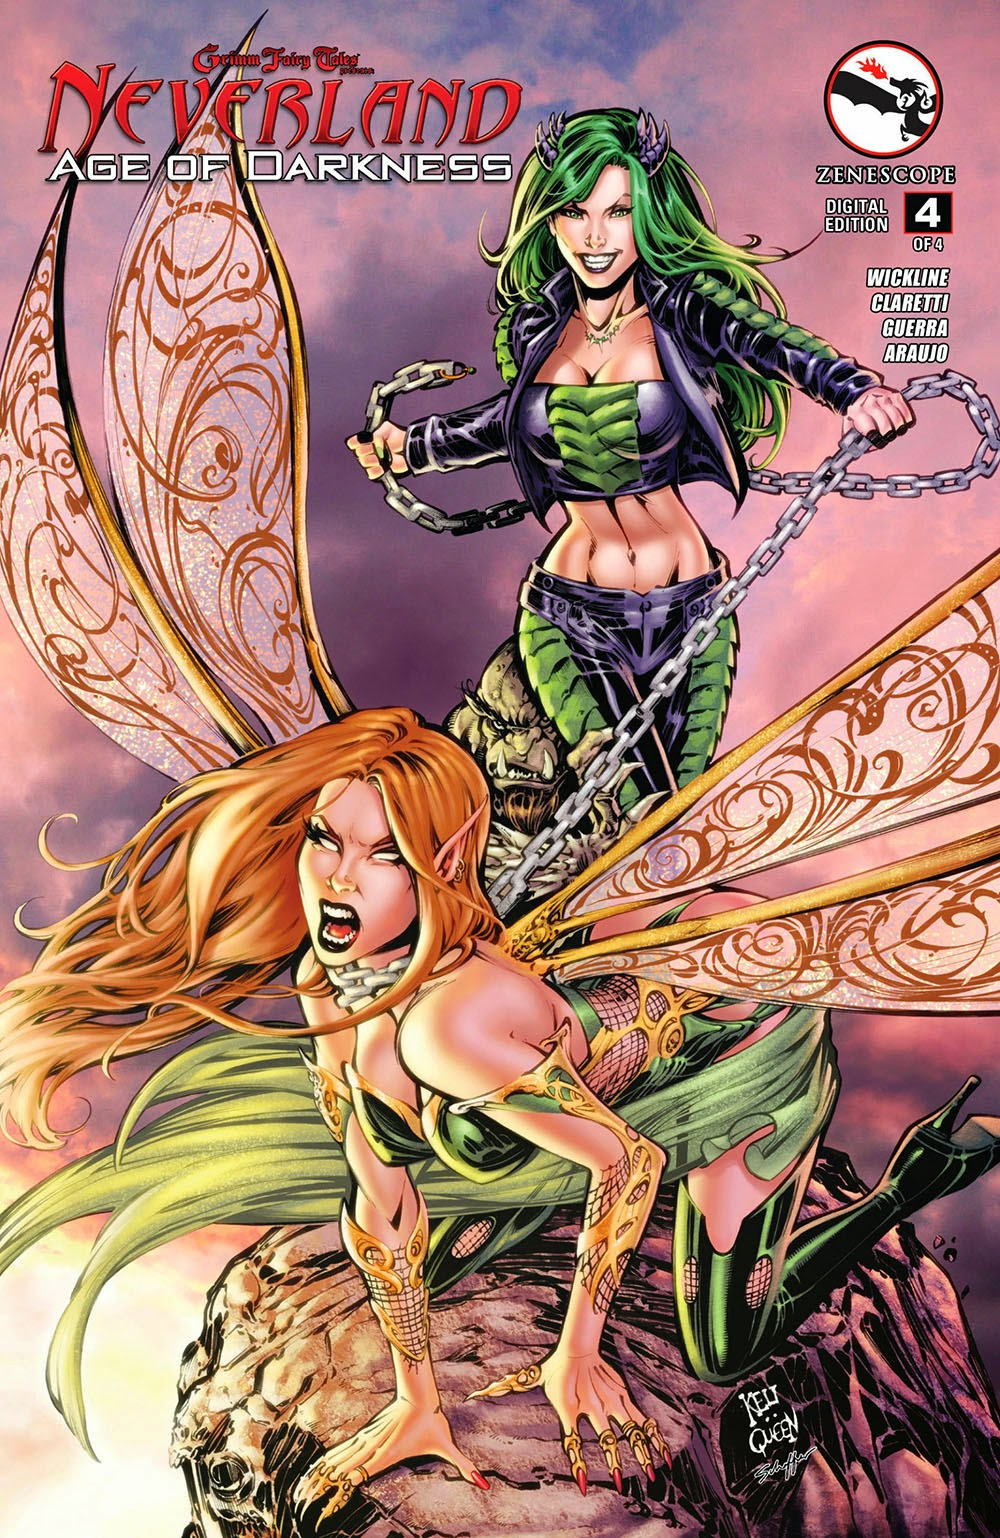 Uncategorized Online Fairy Tales grimm fairy tales presents neverland age of darkness viewcomic 004 2014